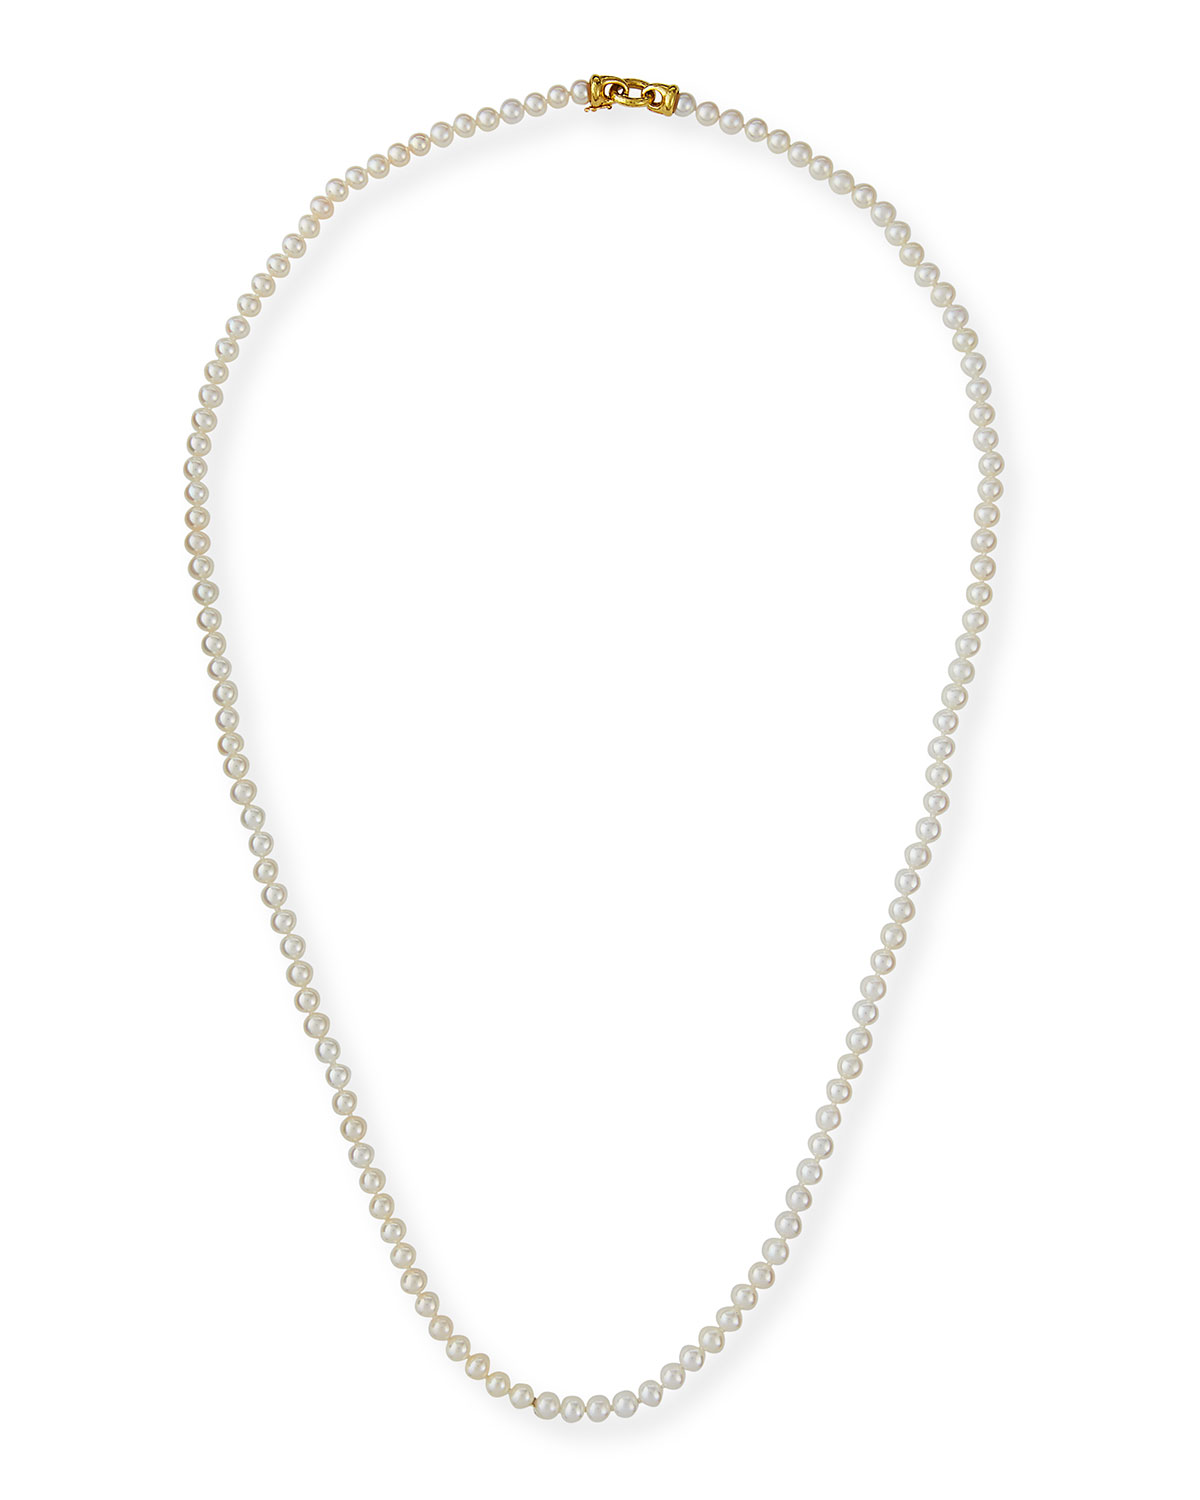 Serena Long Pearl Necklace, 35